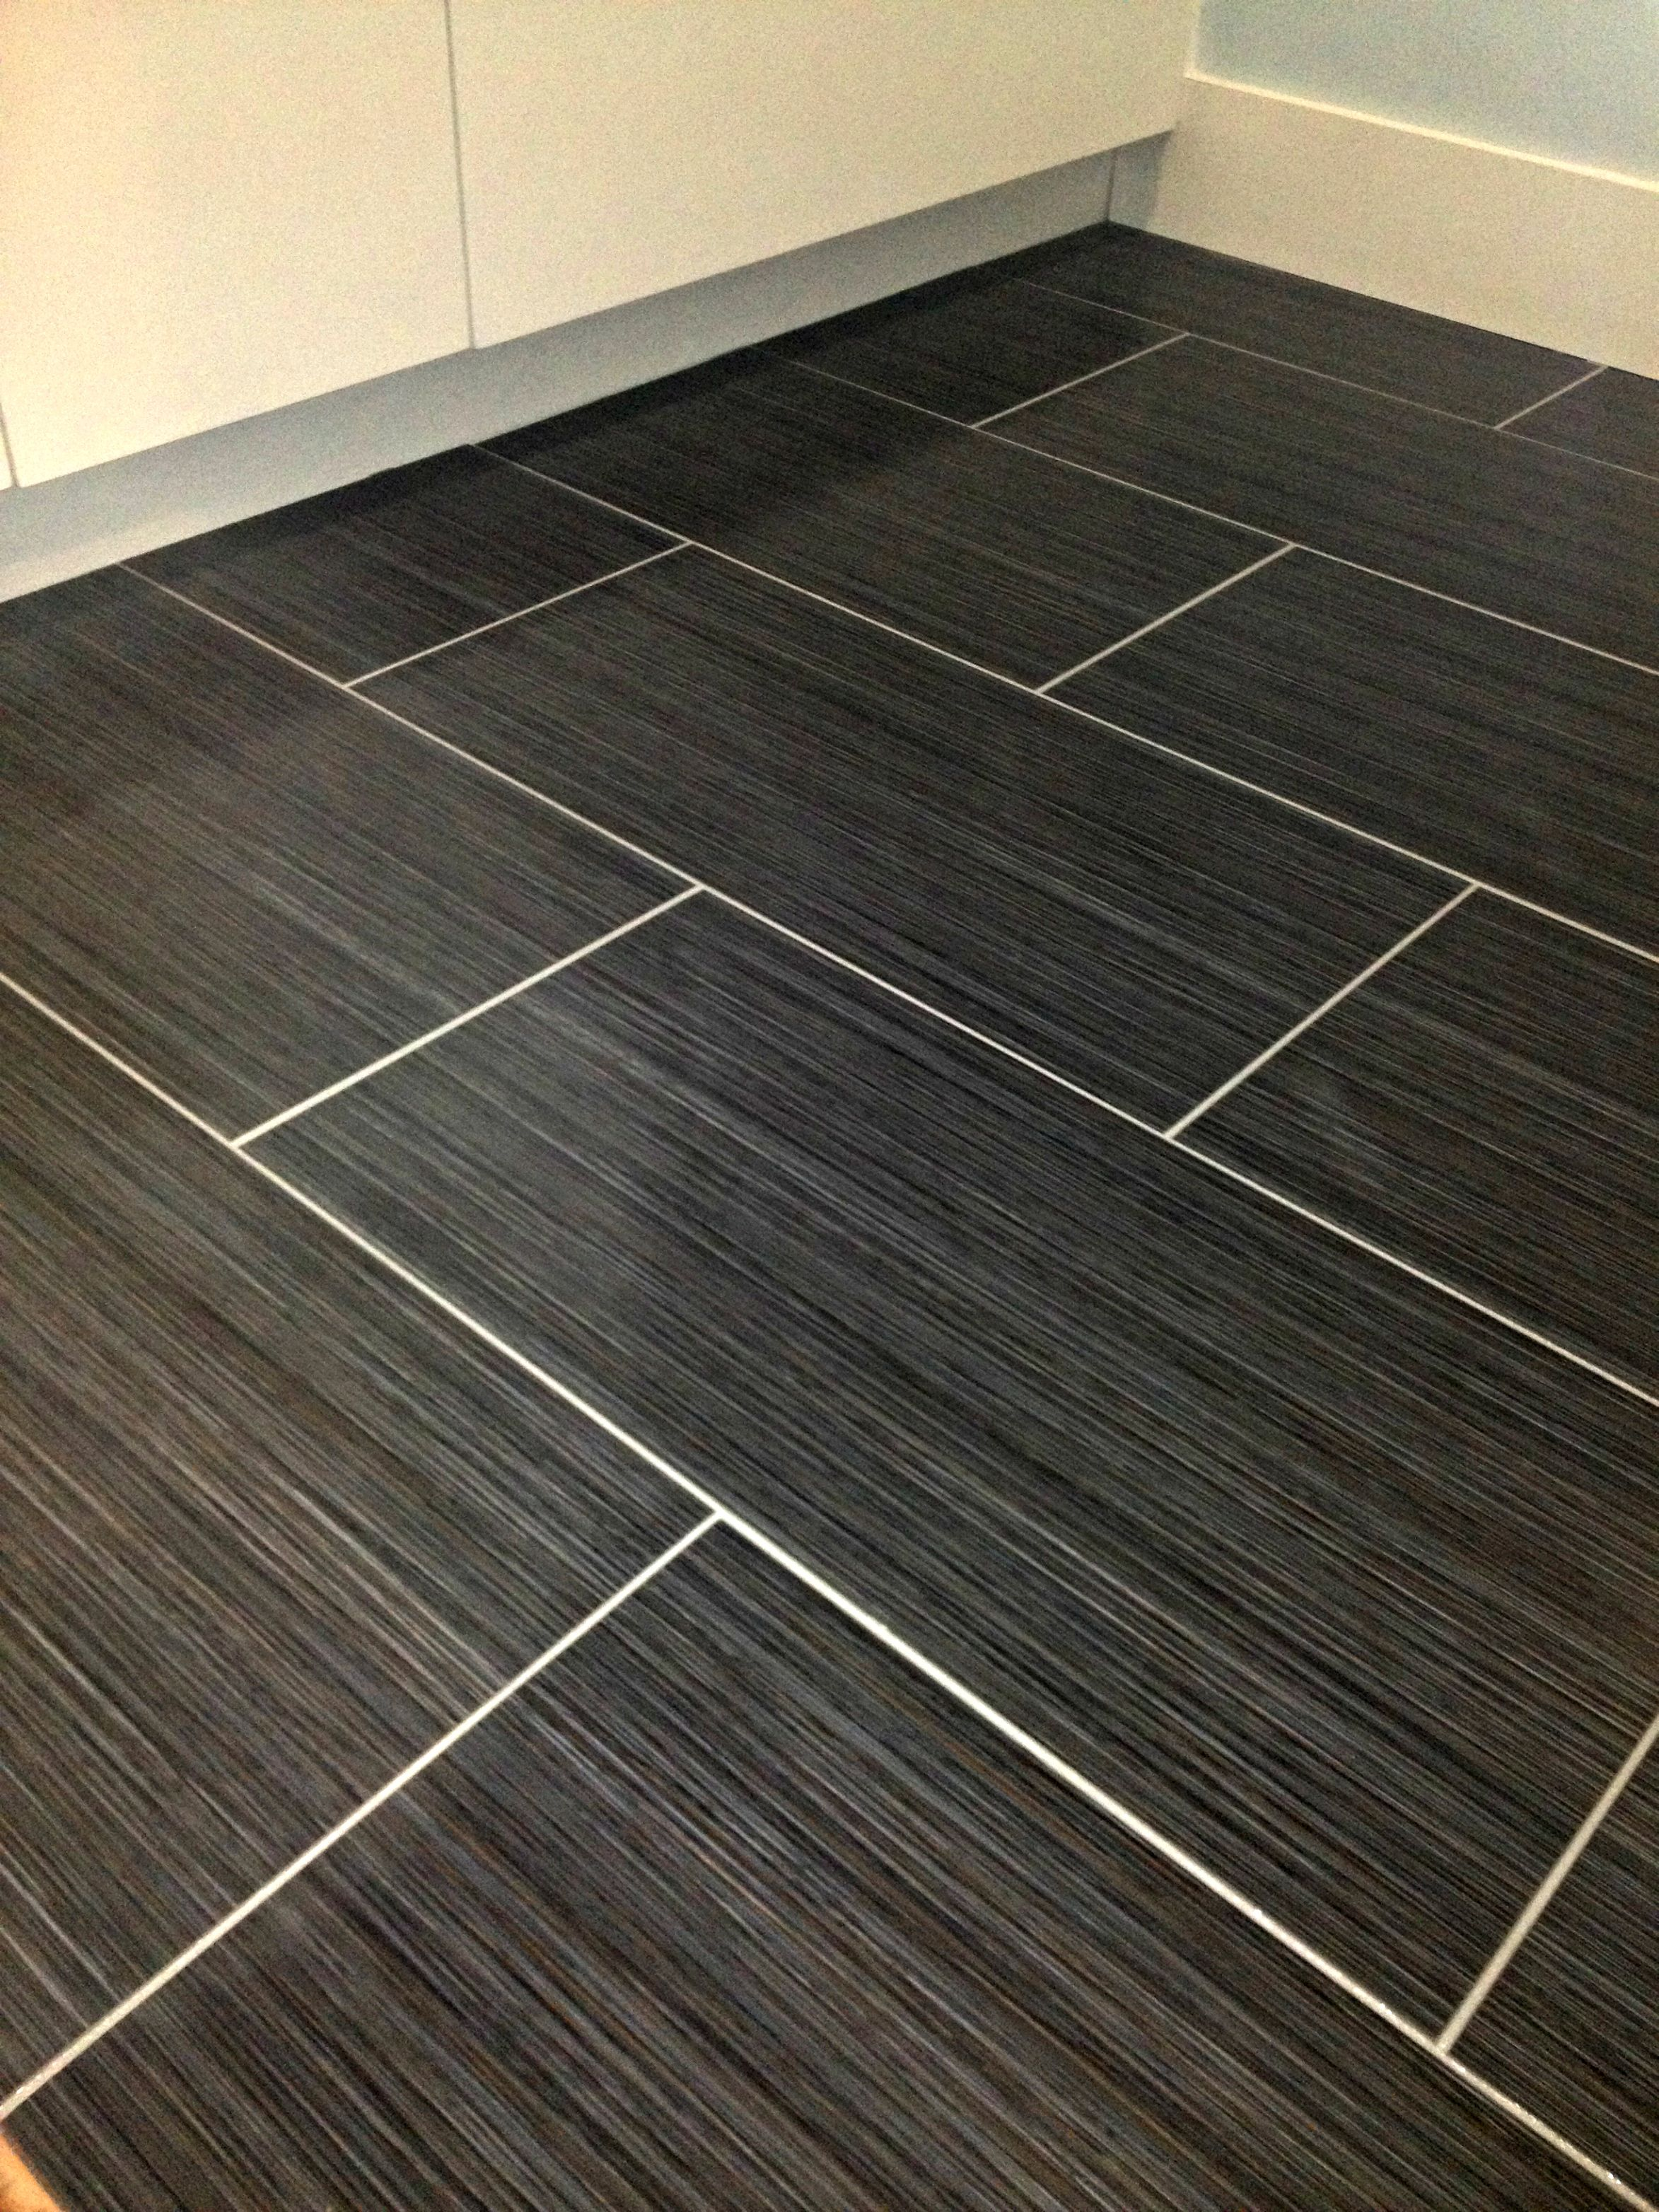 Dark Tile Flooring Entrancing Floor With Dark Tile And Light Grout Our Work  Tile Design Decoration